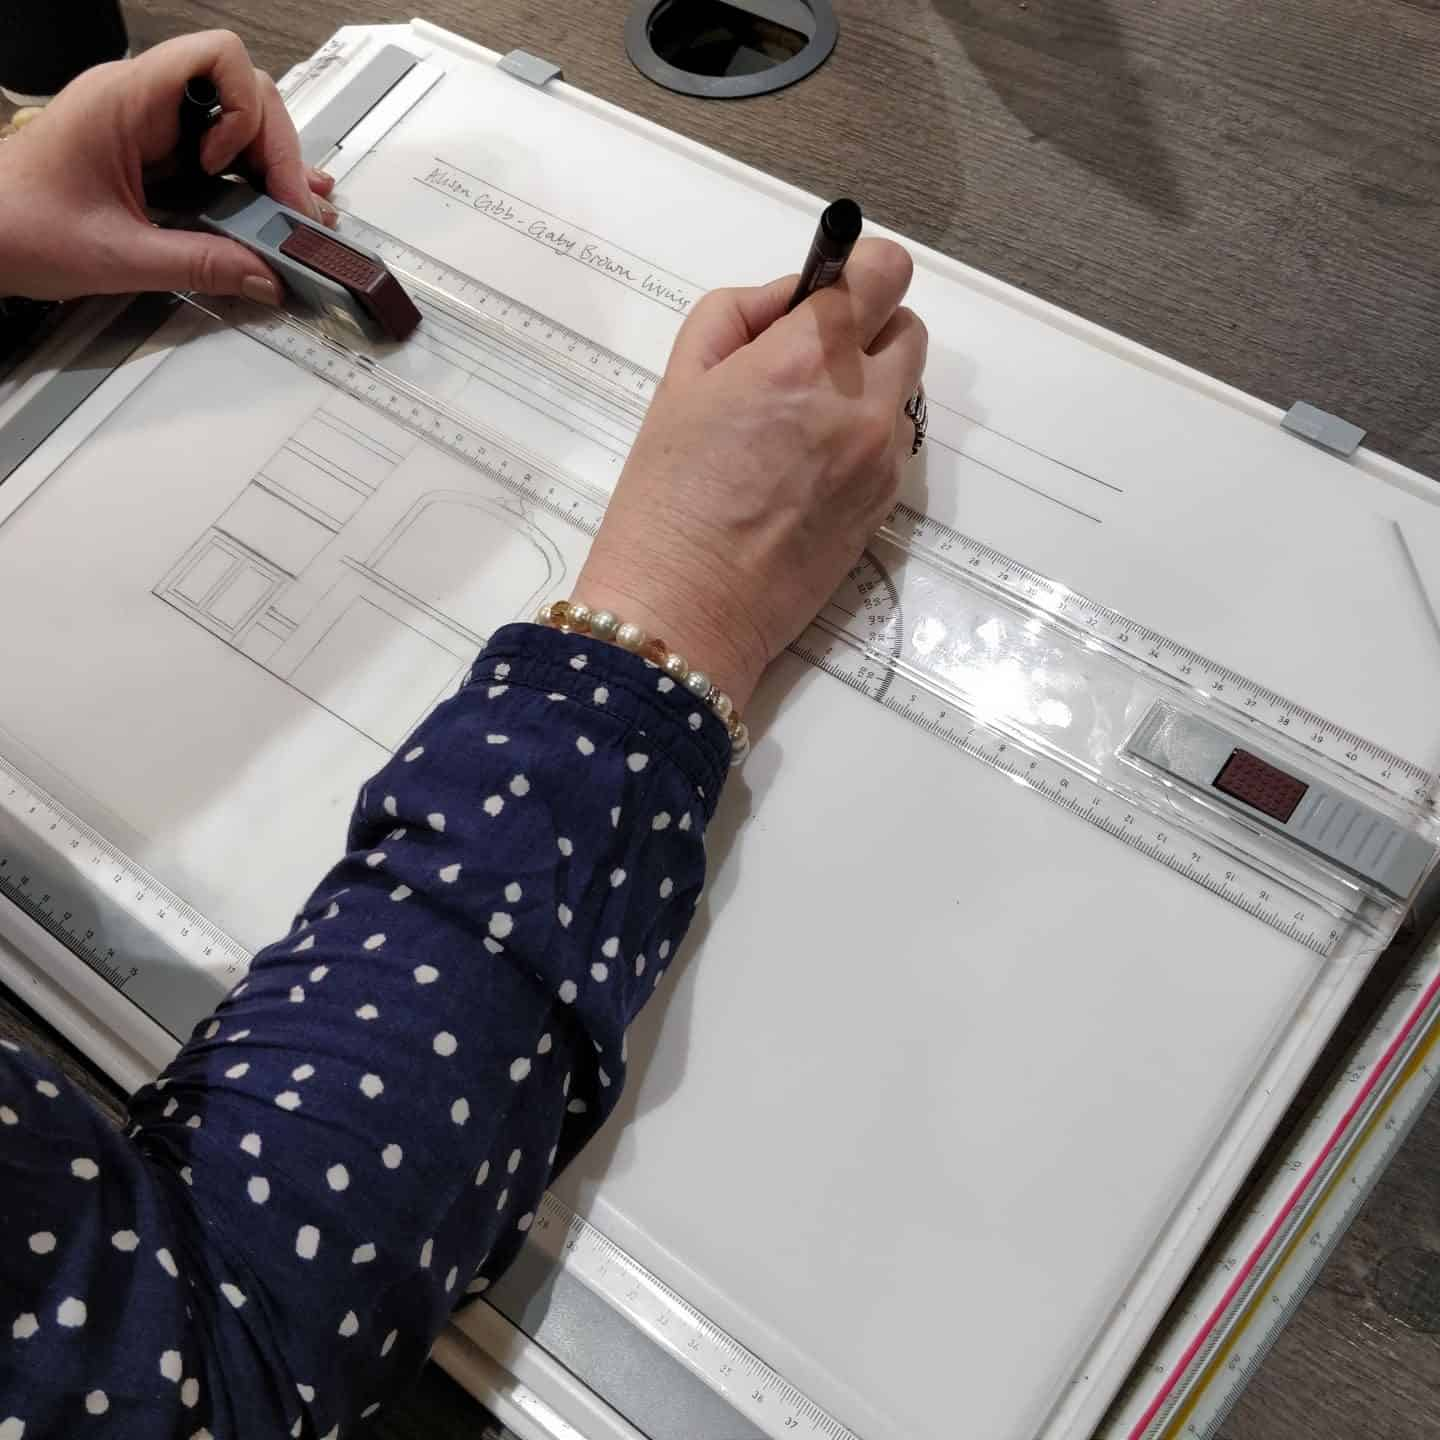 Technical scale drawings at Juliette's Interior Design School in London